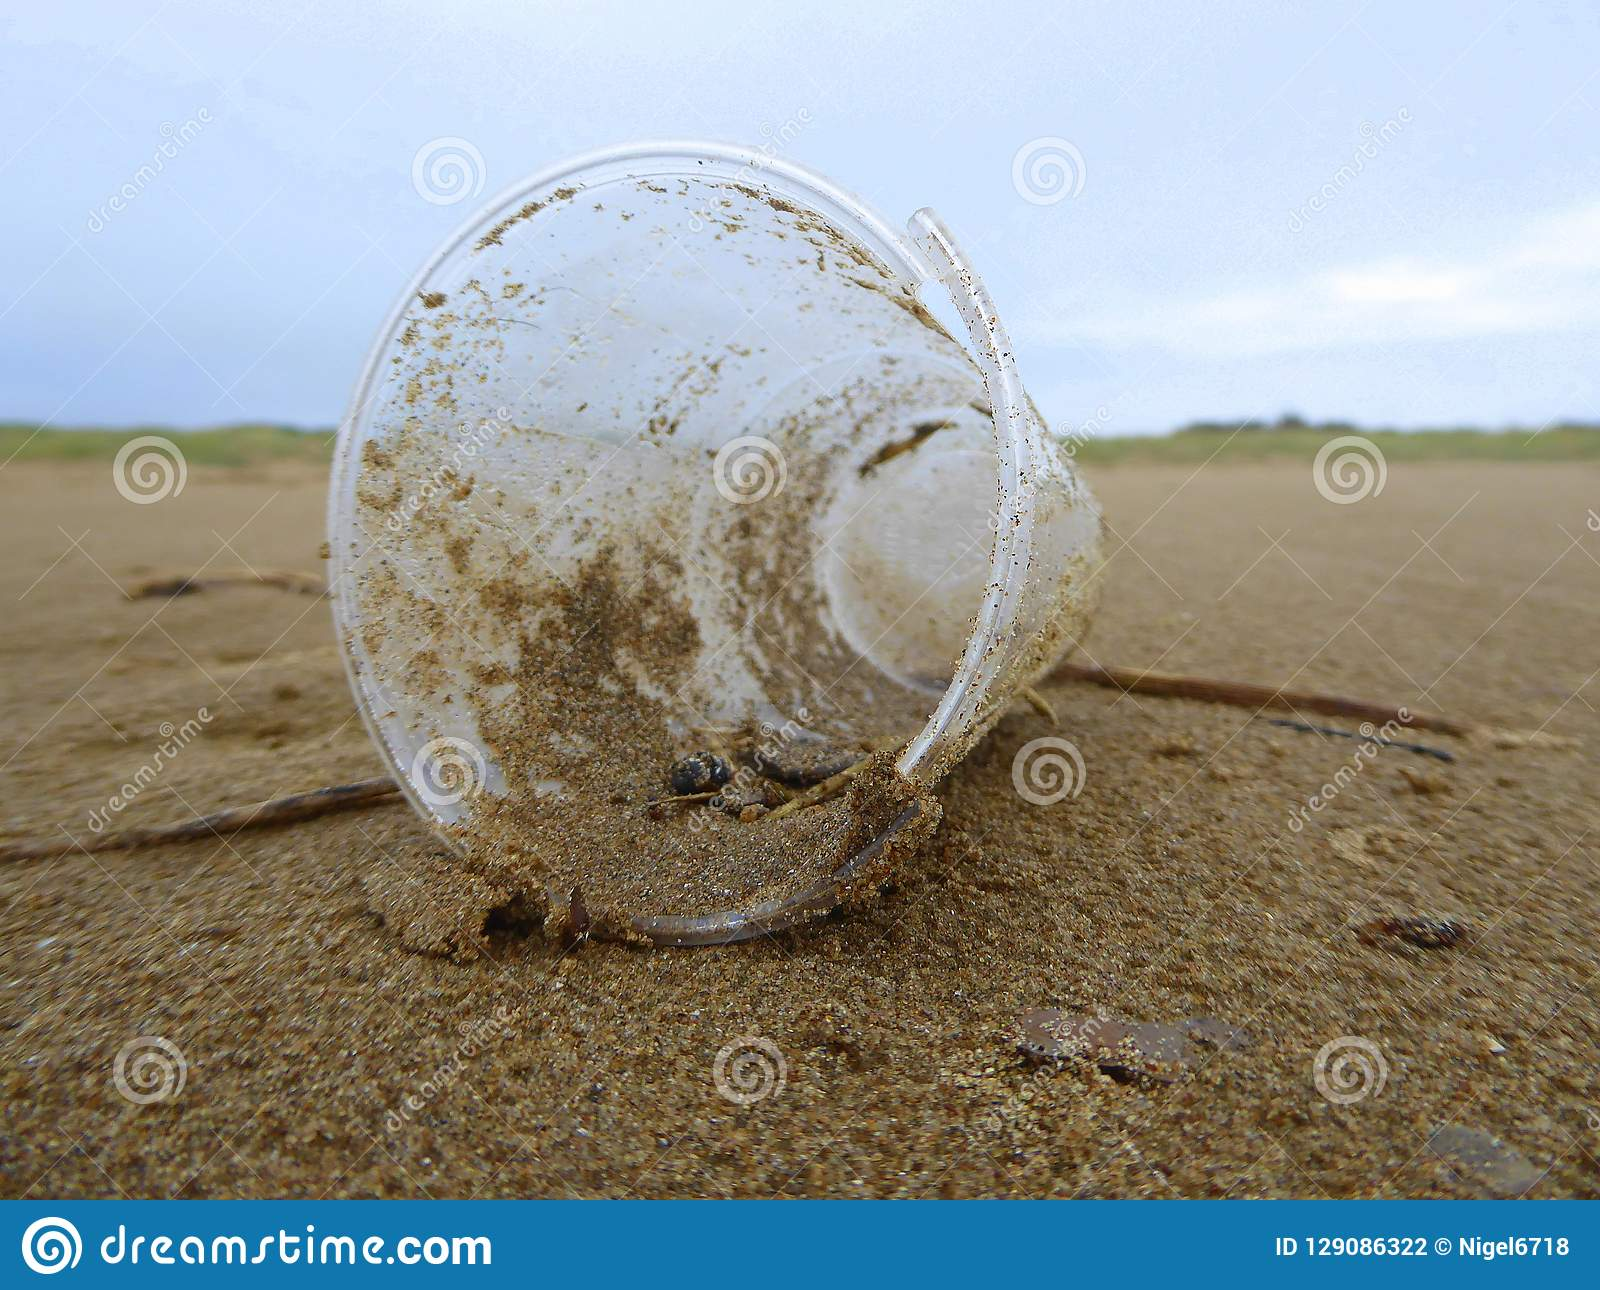 Plastic cup litter on beach